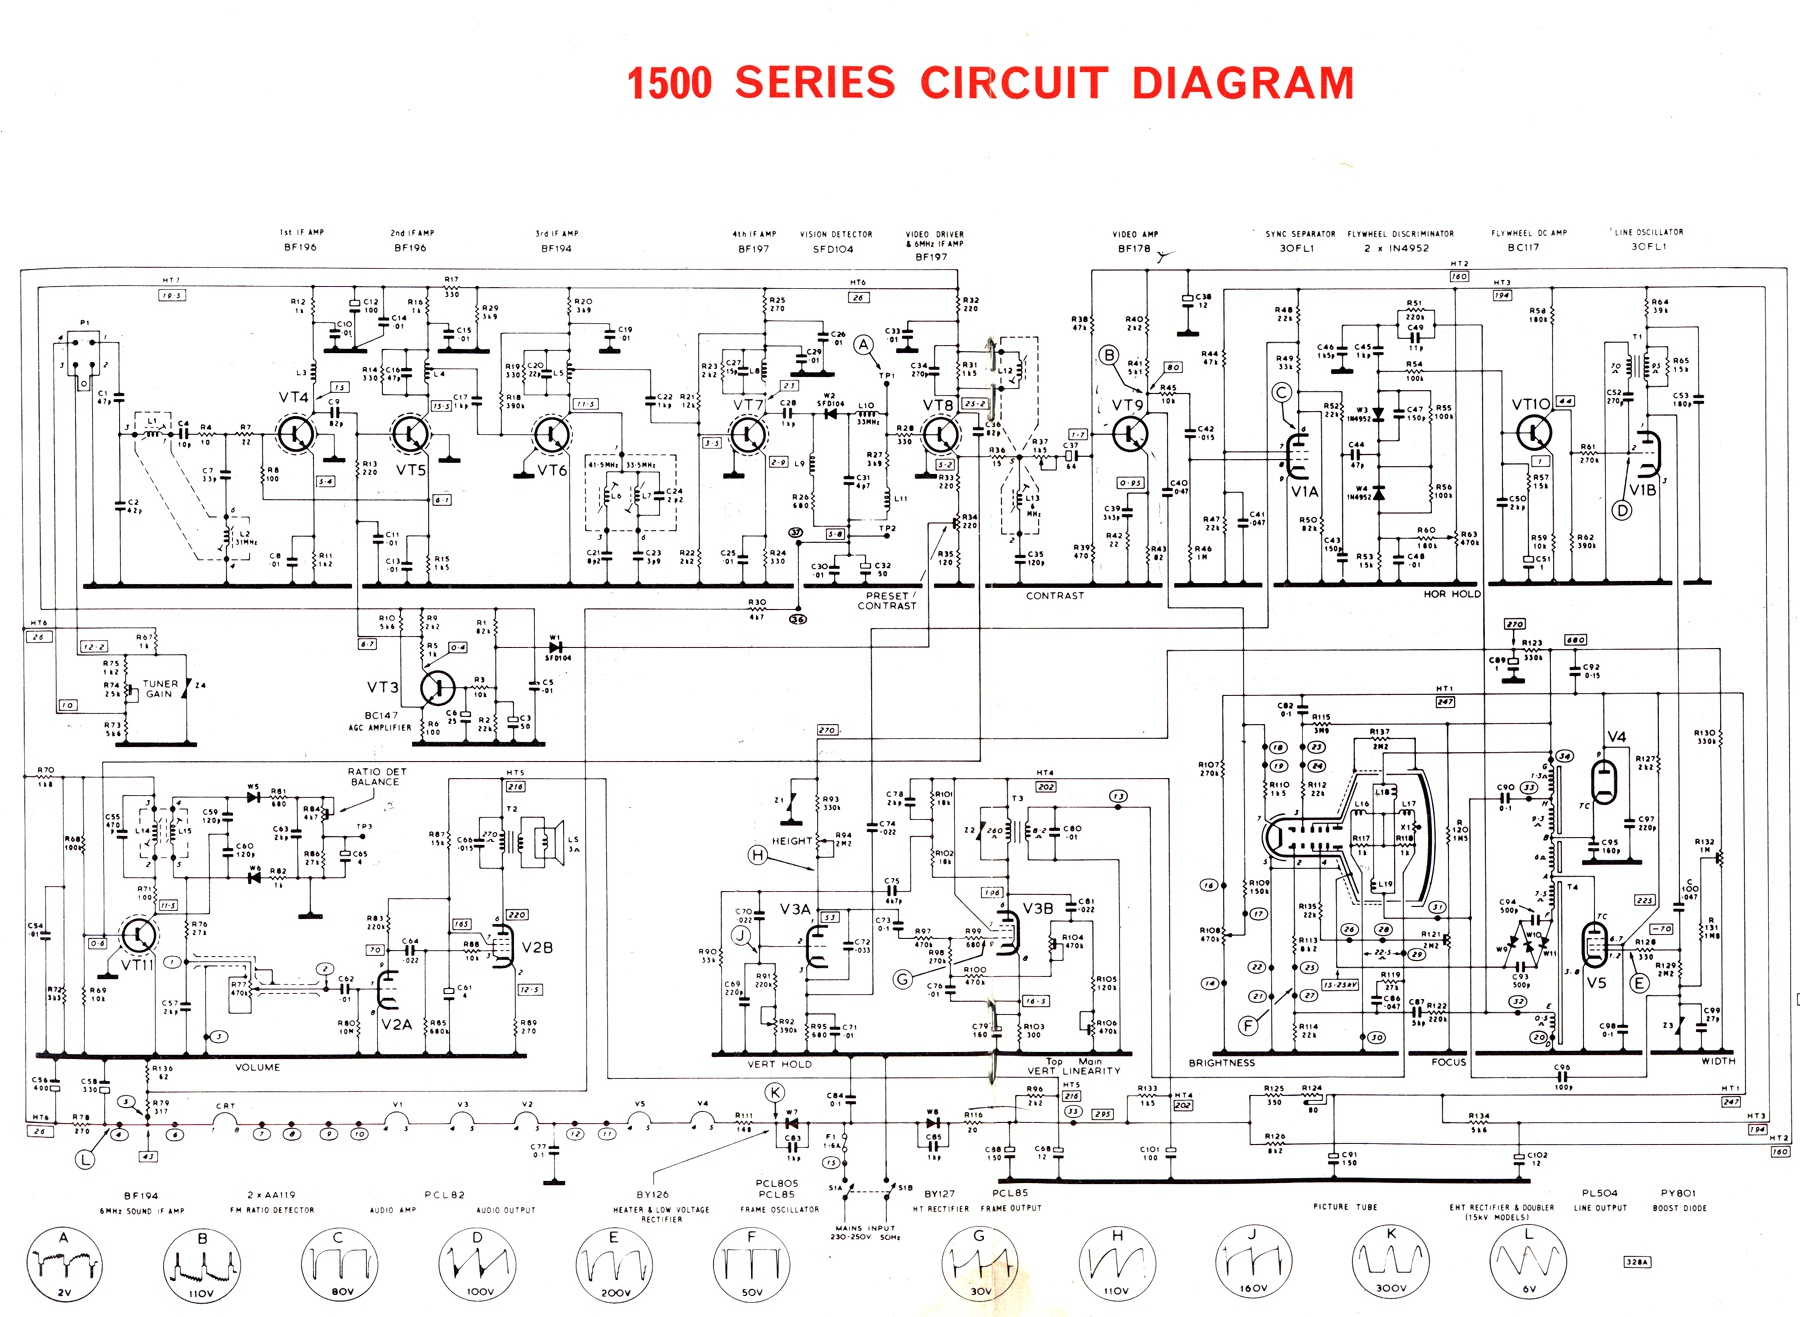 BRC 1500 Chassis, D|E|R Advice to Engineers 39